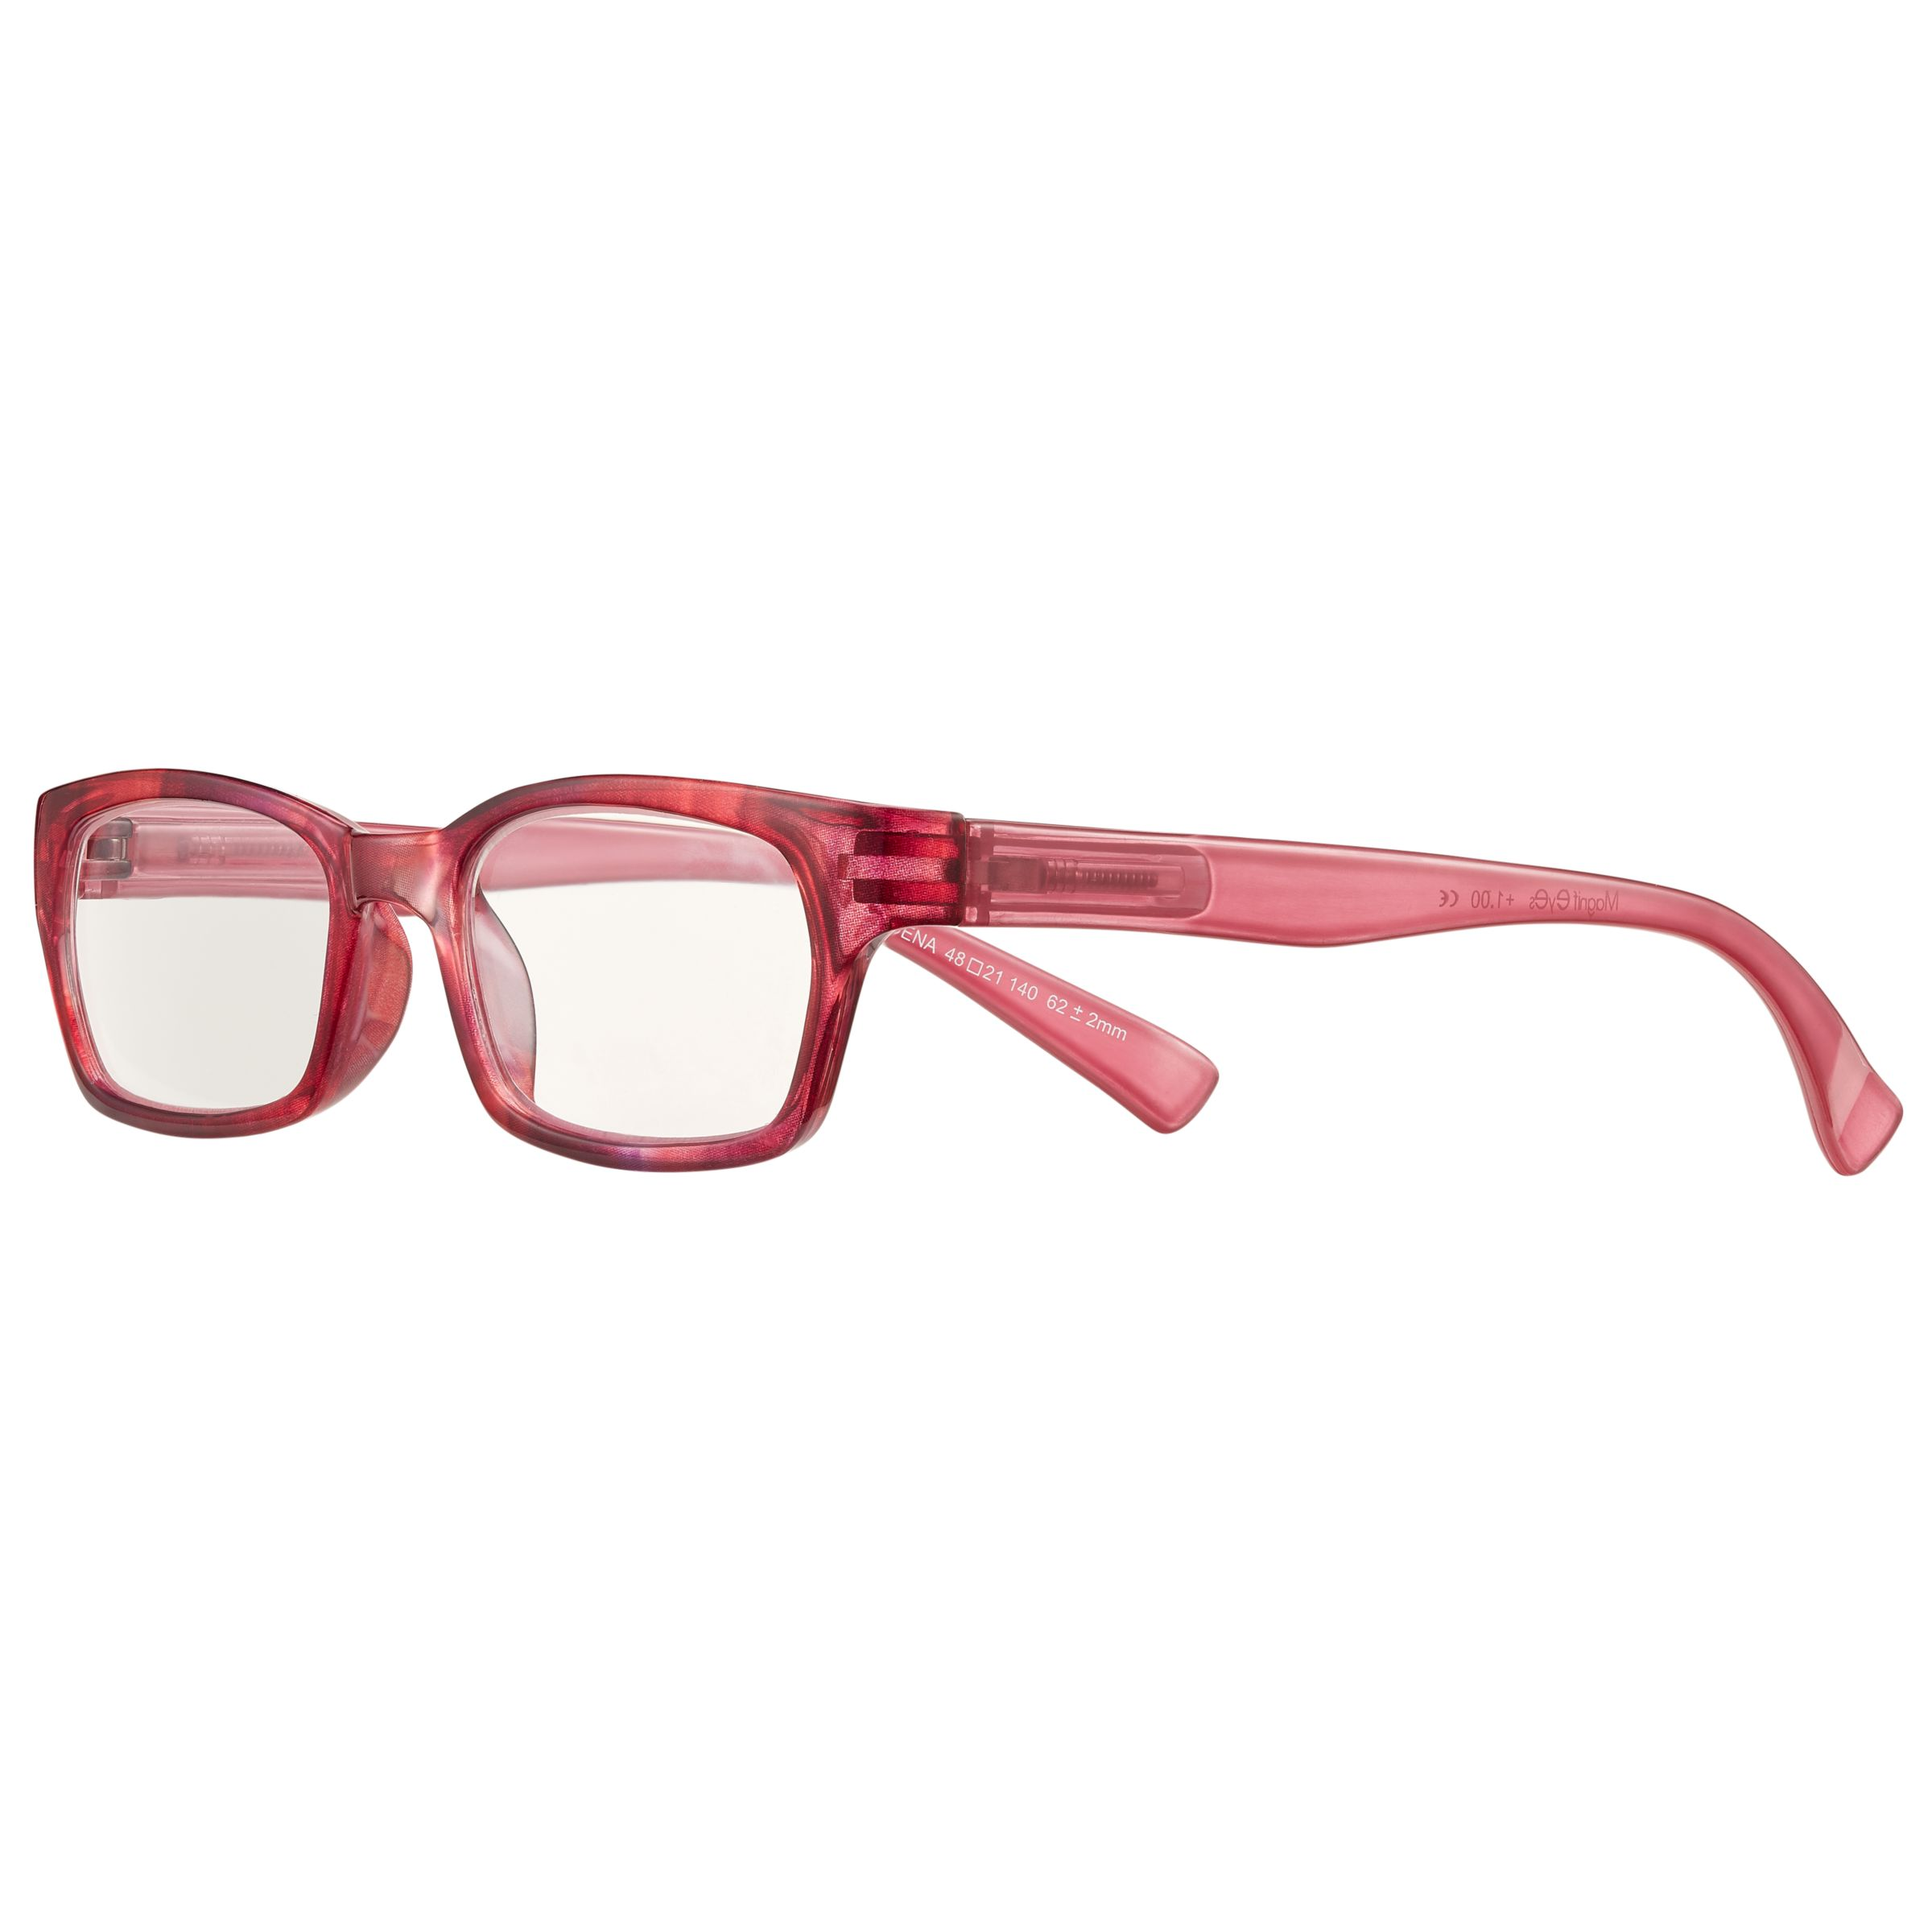 Eyeglass Frames Pasadena : John Lewis Catalogue - Glasses from John Lewis at ...